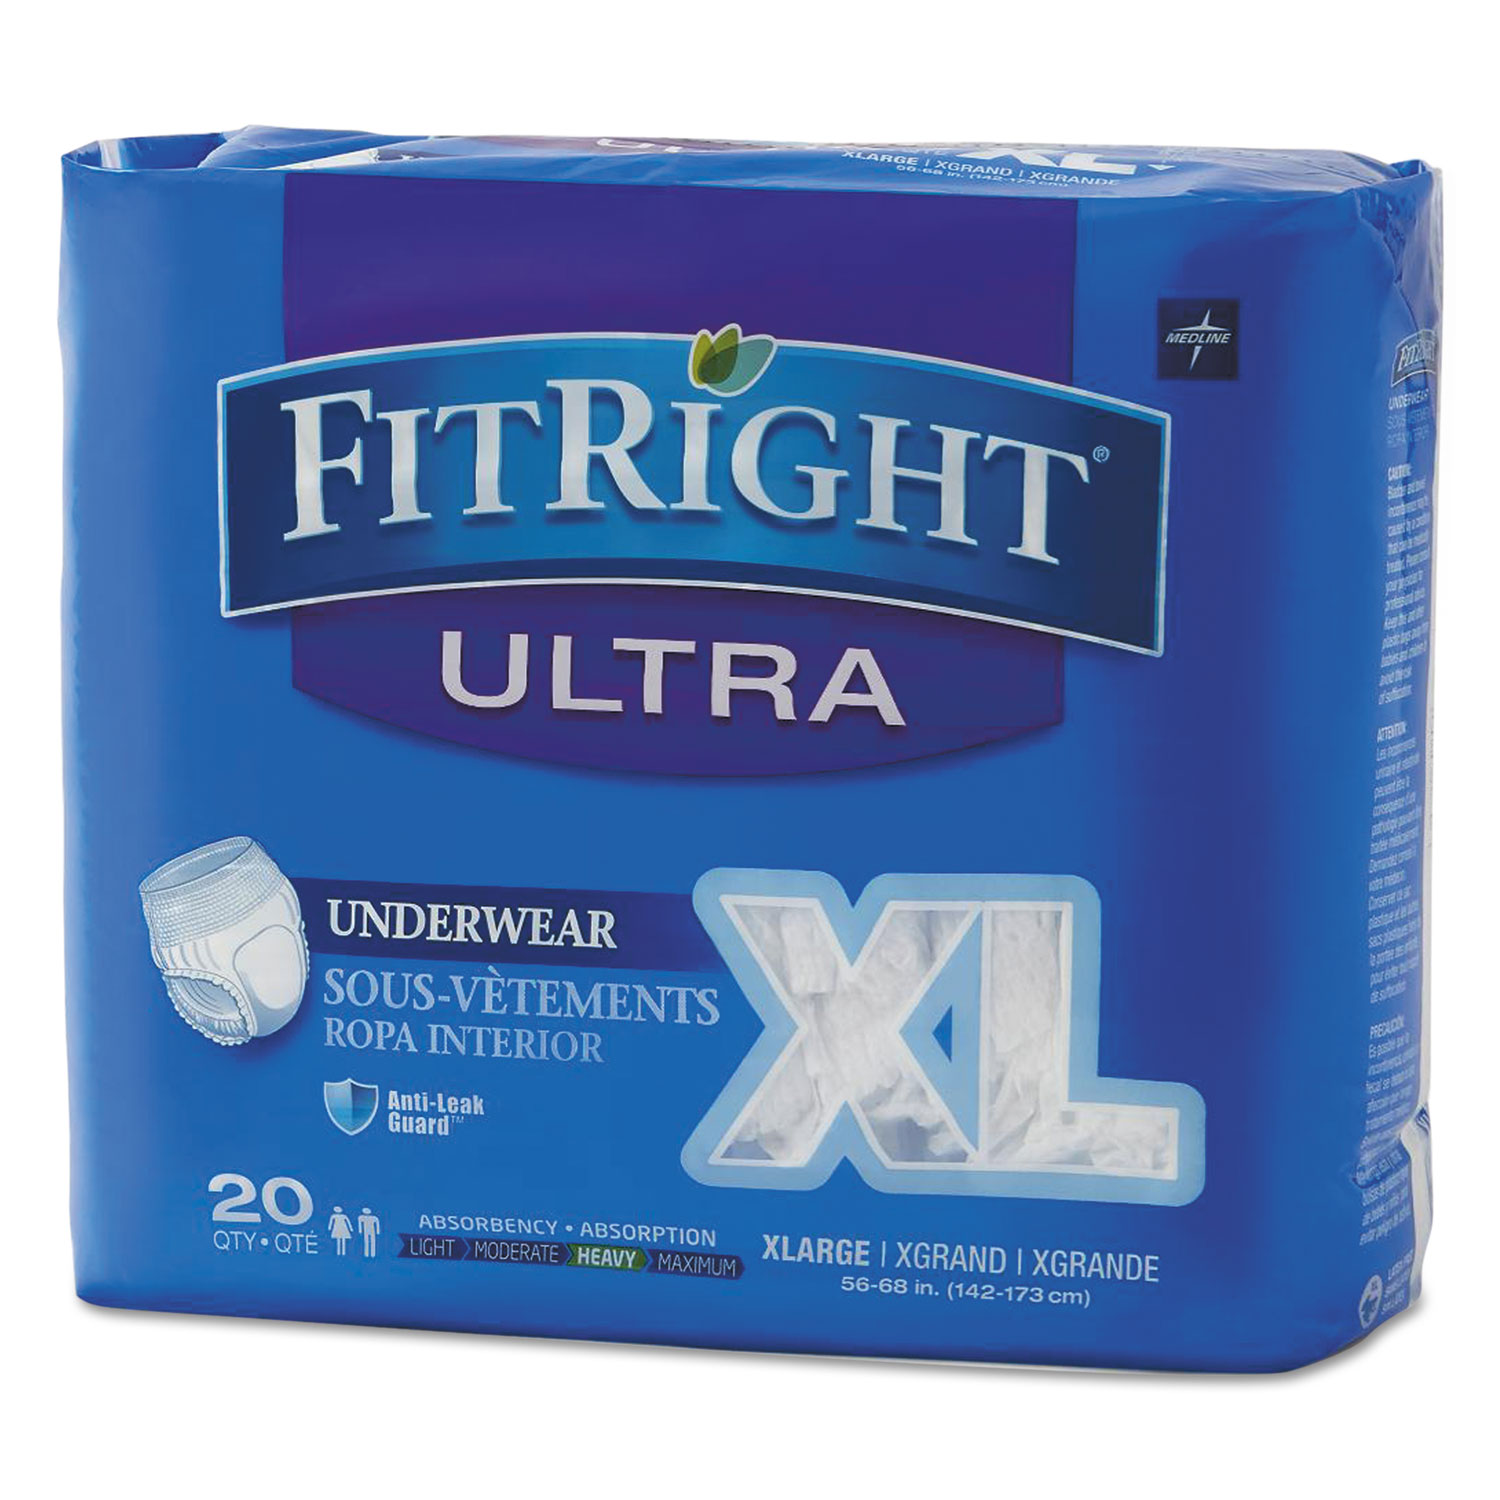 "FitRight Ultra Protective Underwear, X-Large, 56"" to 68"" Waist, 20/Pack, 4 Pack/Carton"